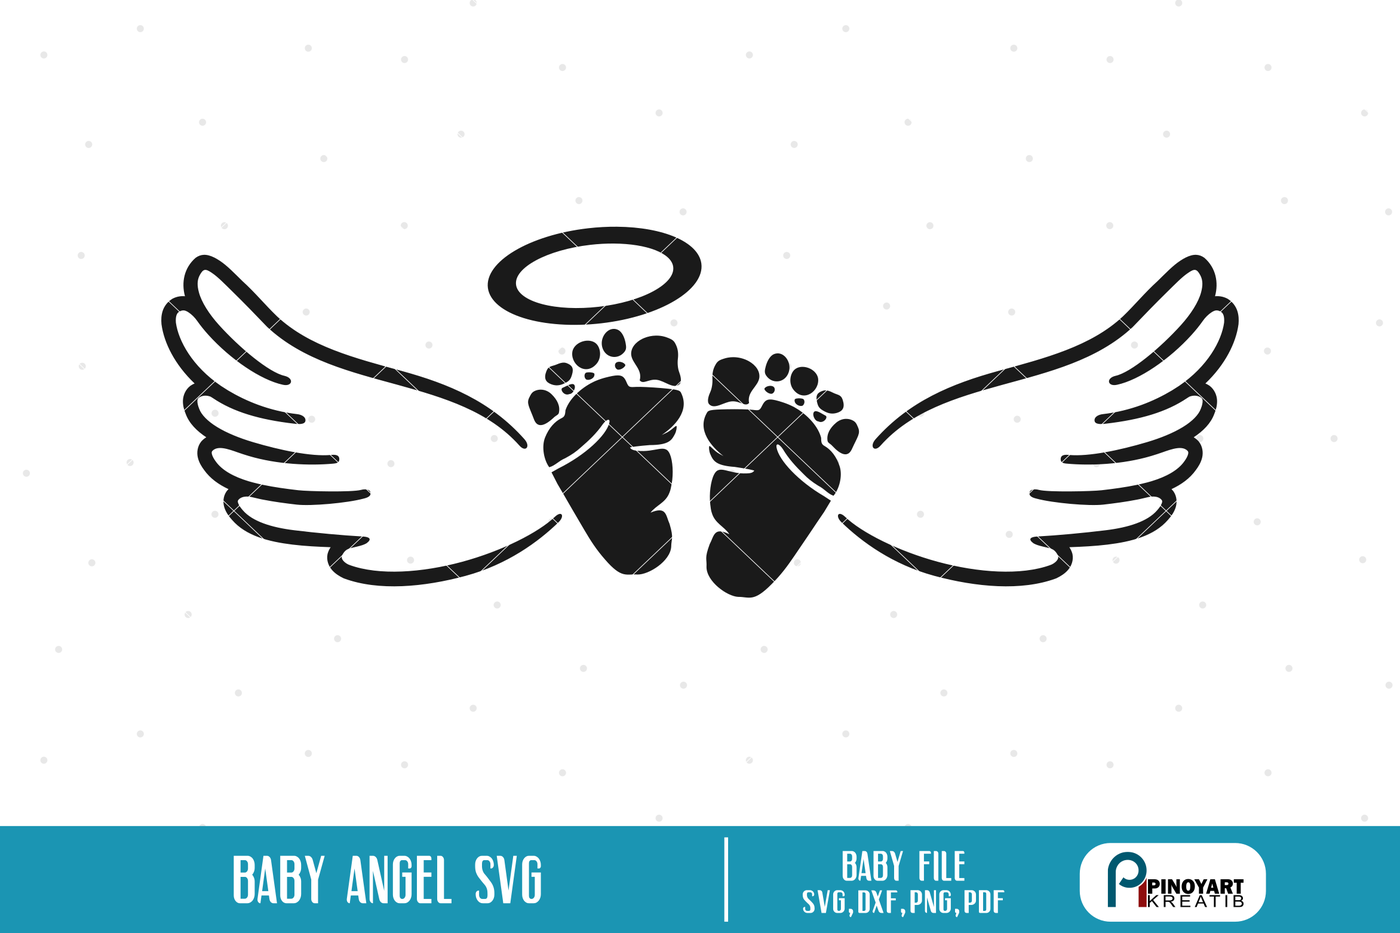 PNG Clipart Silhouette and Cut Files. DXF Wings SVG